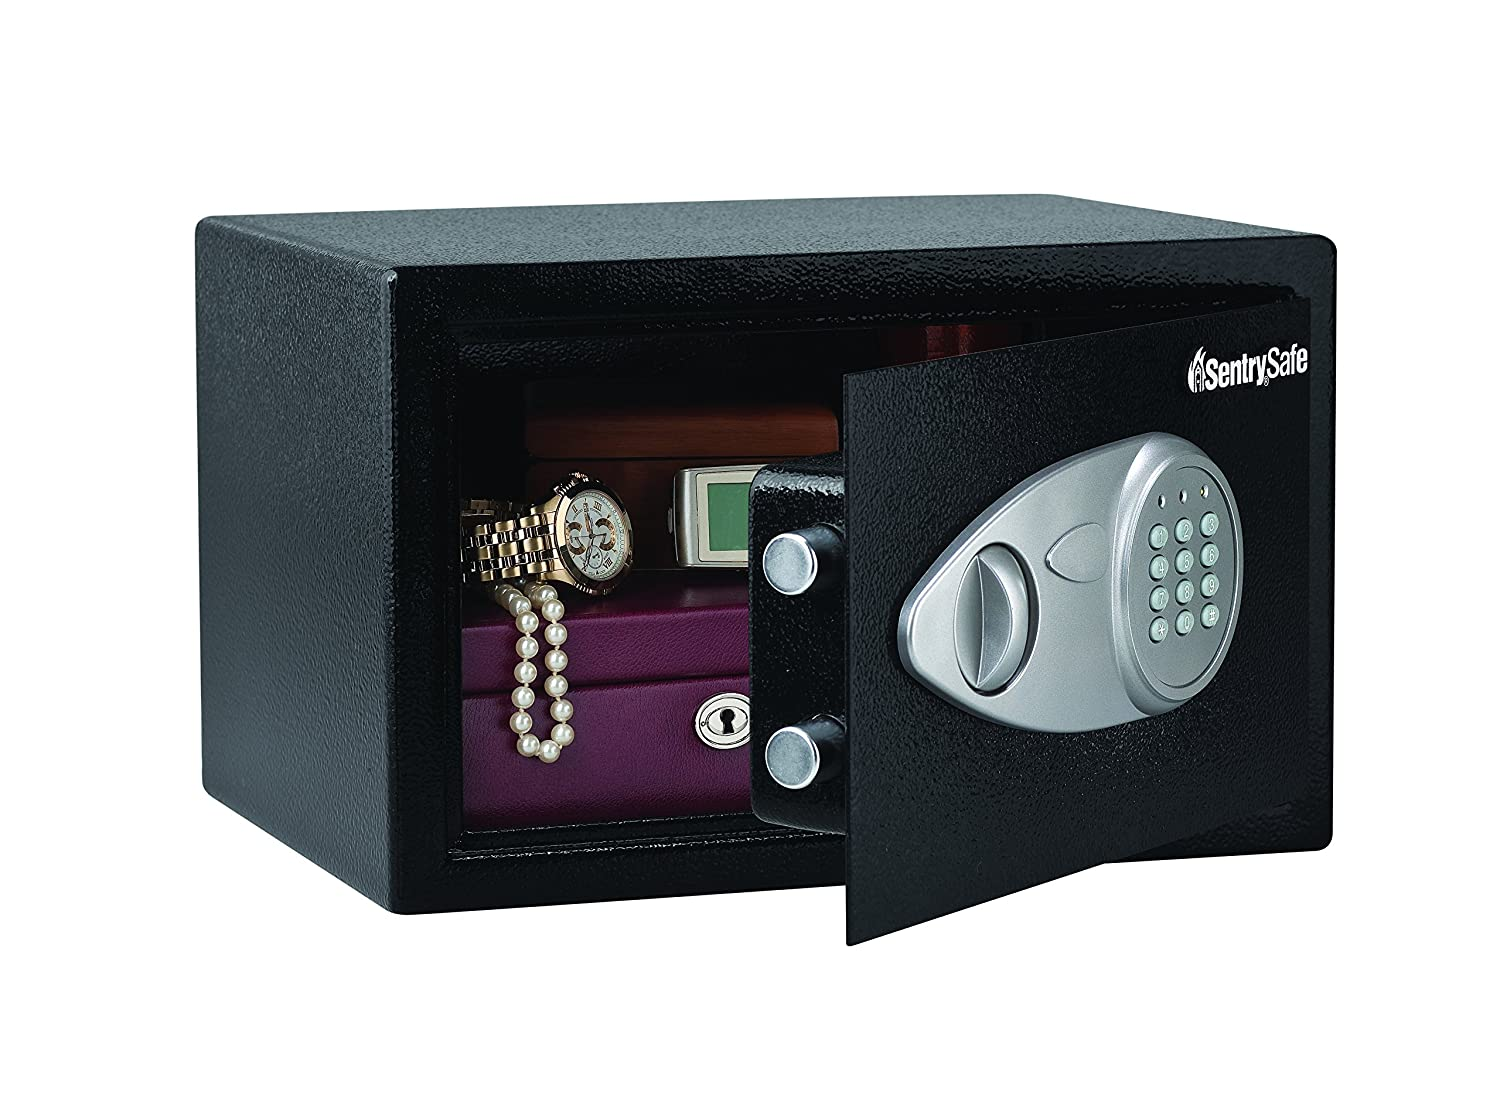 Best Home Safes To Buy for you